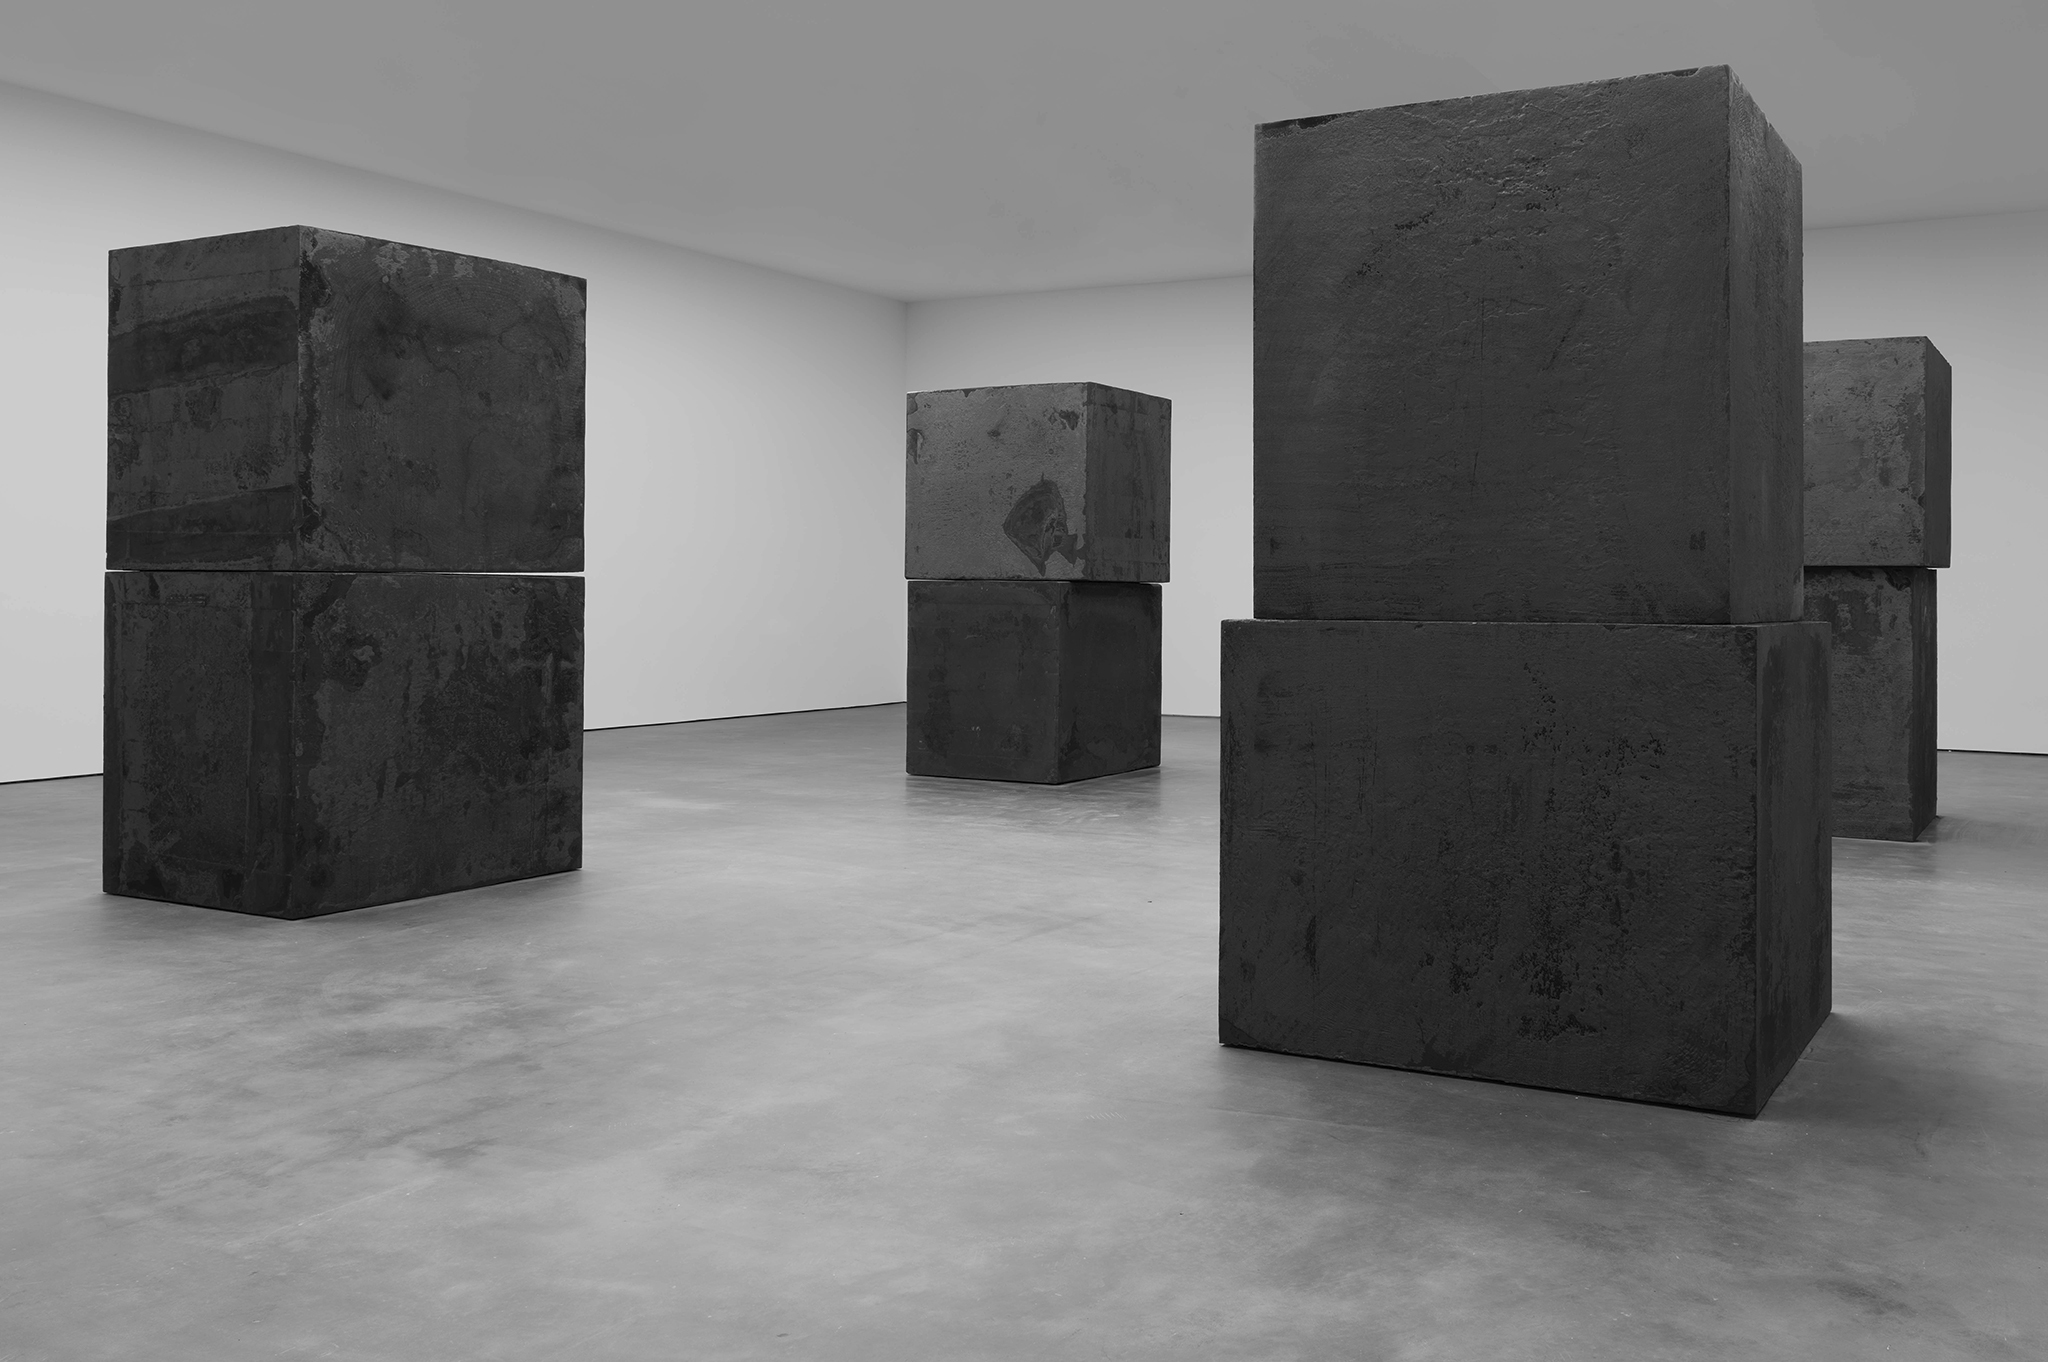 Richard Serra, Equal